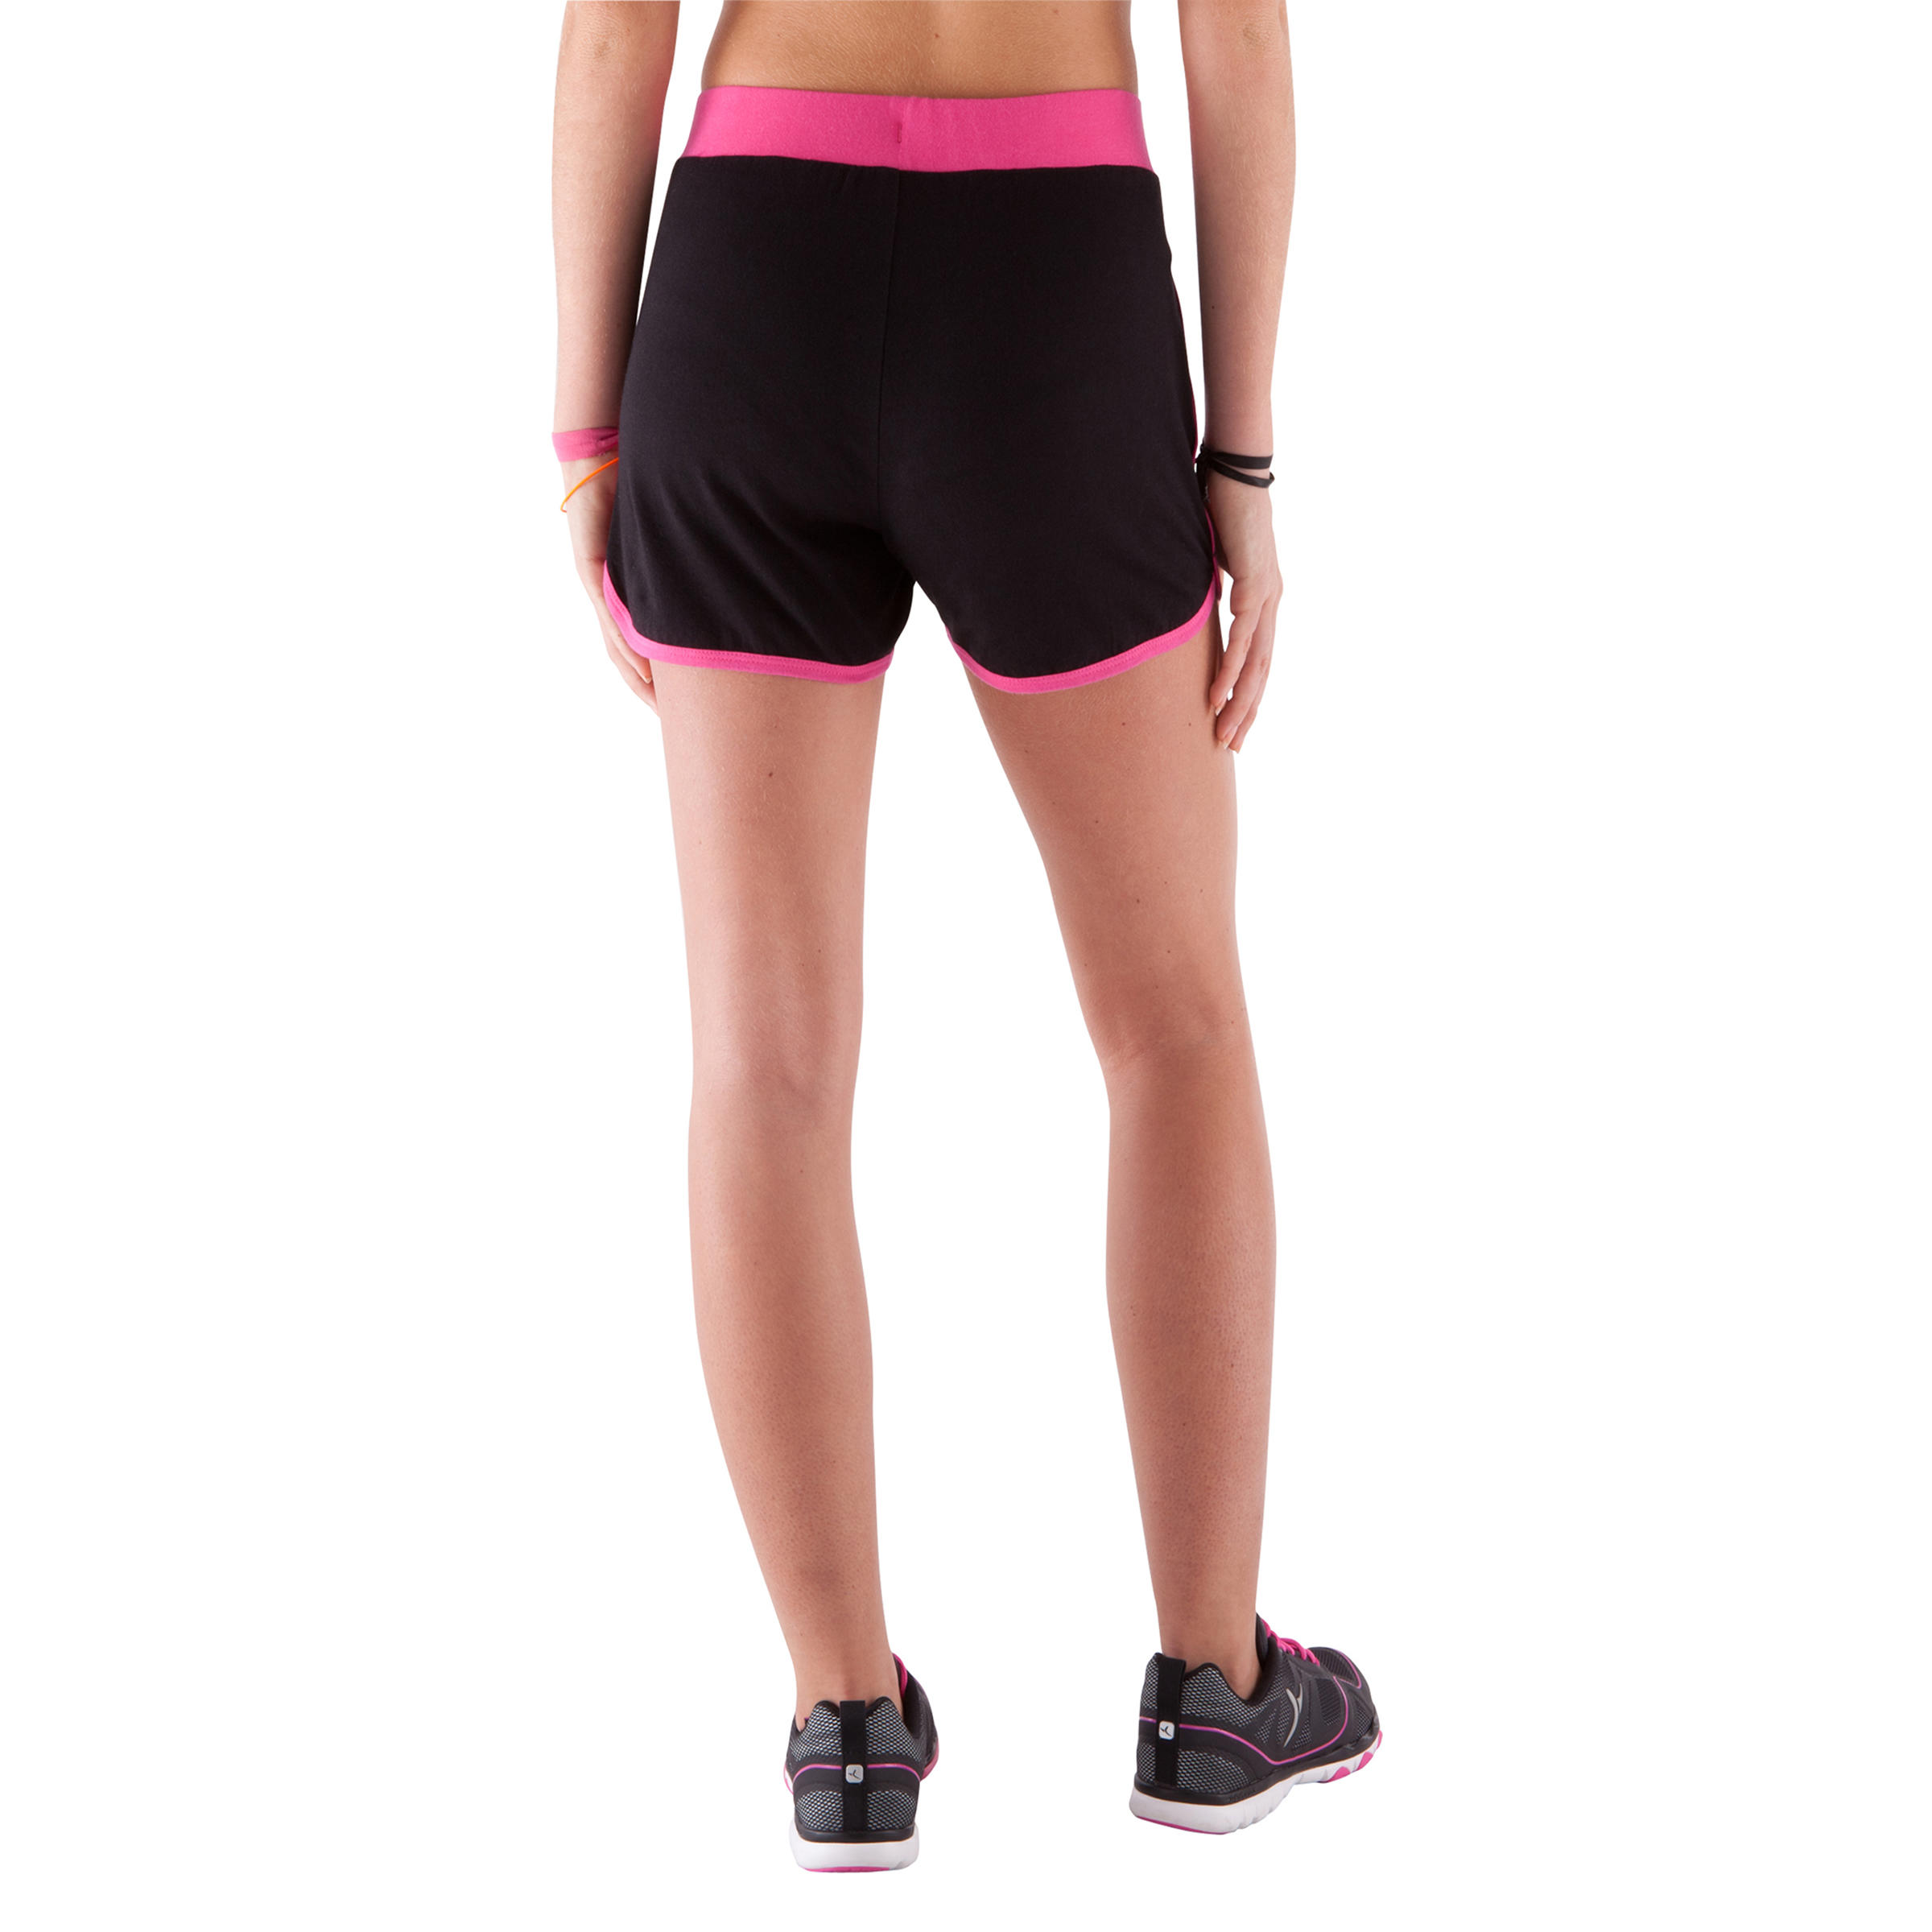 Girls' Gym Shorts - Black